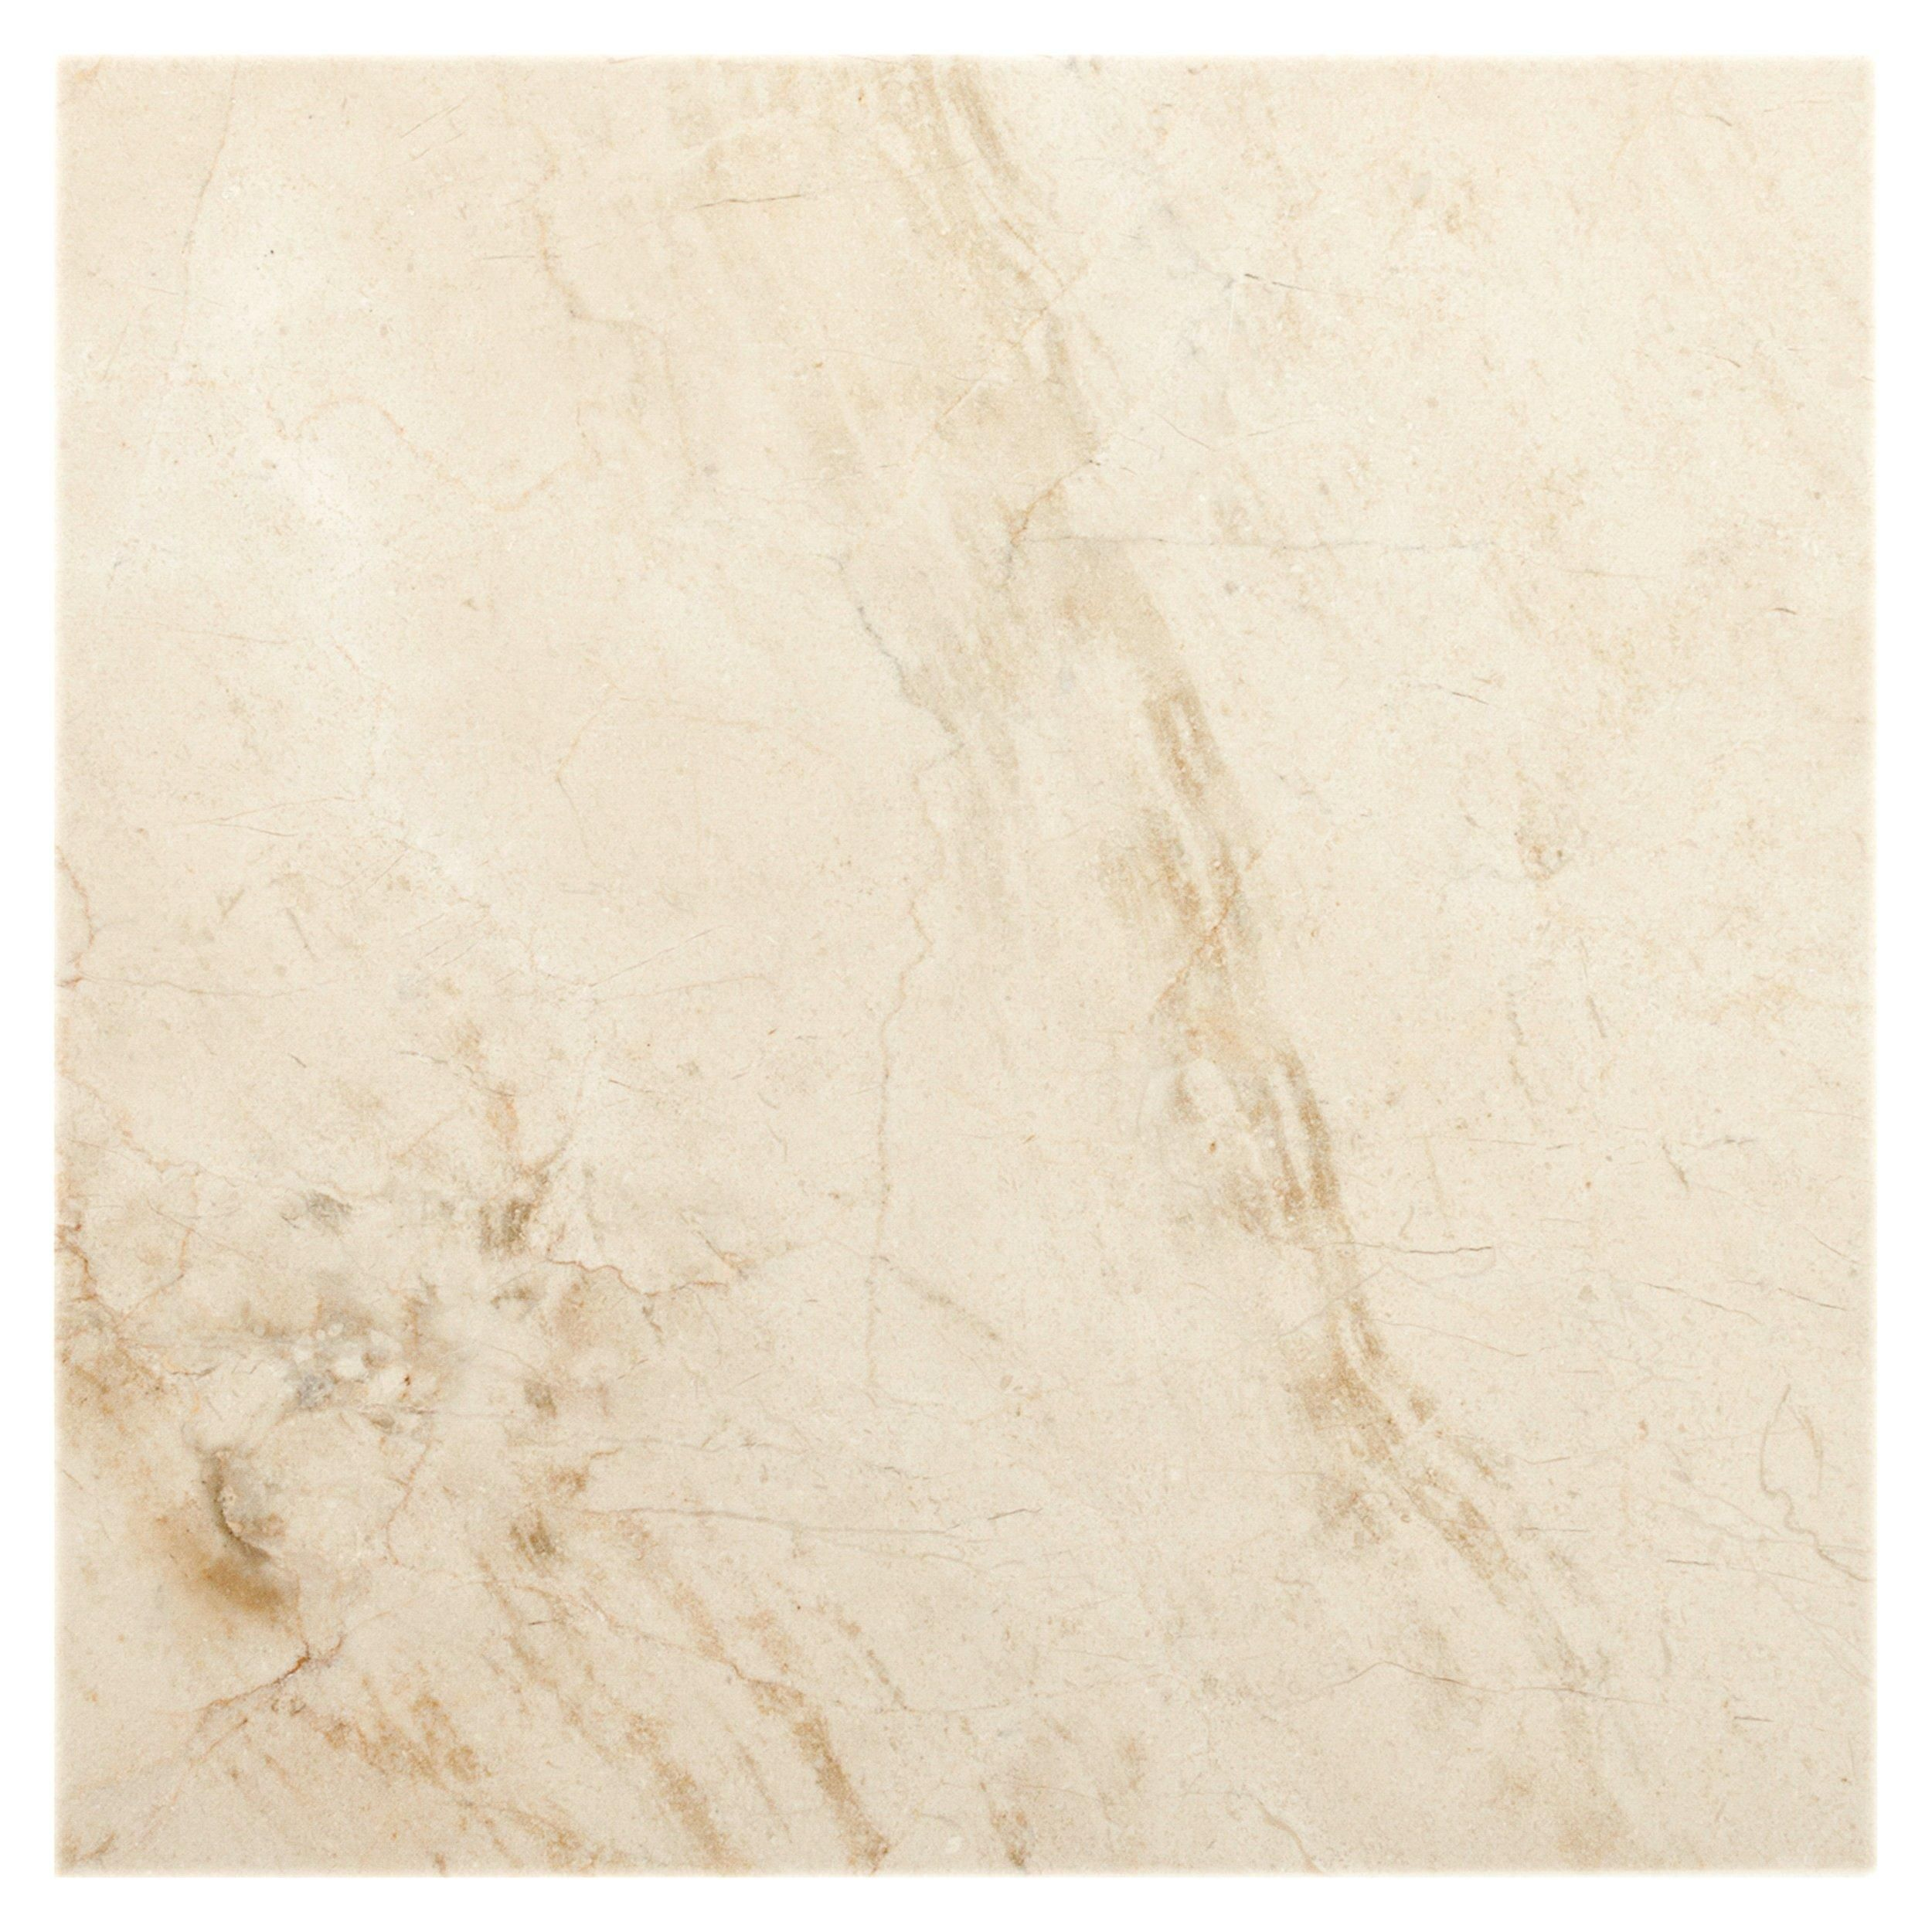 Crema Marfil Marble Tile Crema Marfil Marble Floor Decor In 2020 Marble Tile Marble Tiles Floor Decor